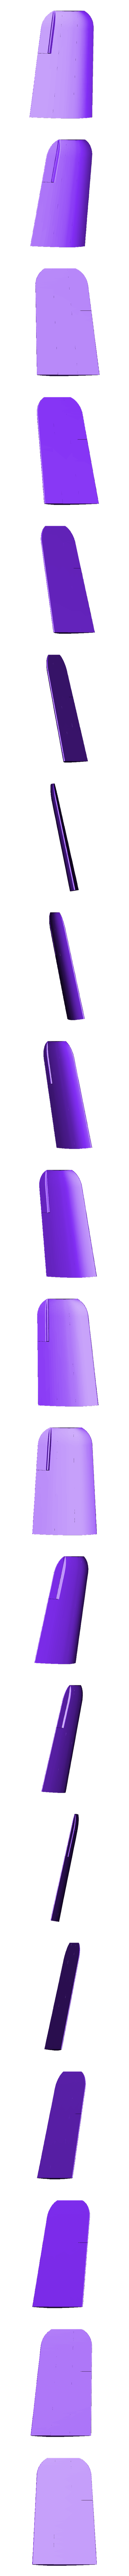 Thinner Left Wing Outer.stl Download free STL file Flyer Mk. 1a Modifications • Object to 3D print, billbo1958